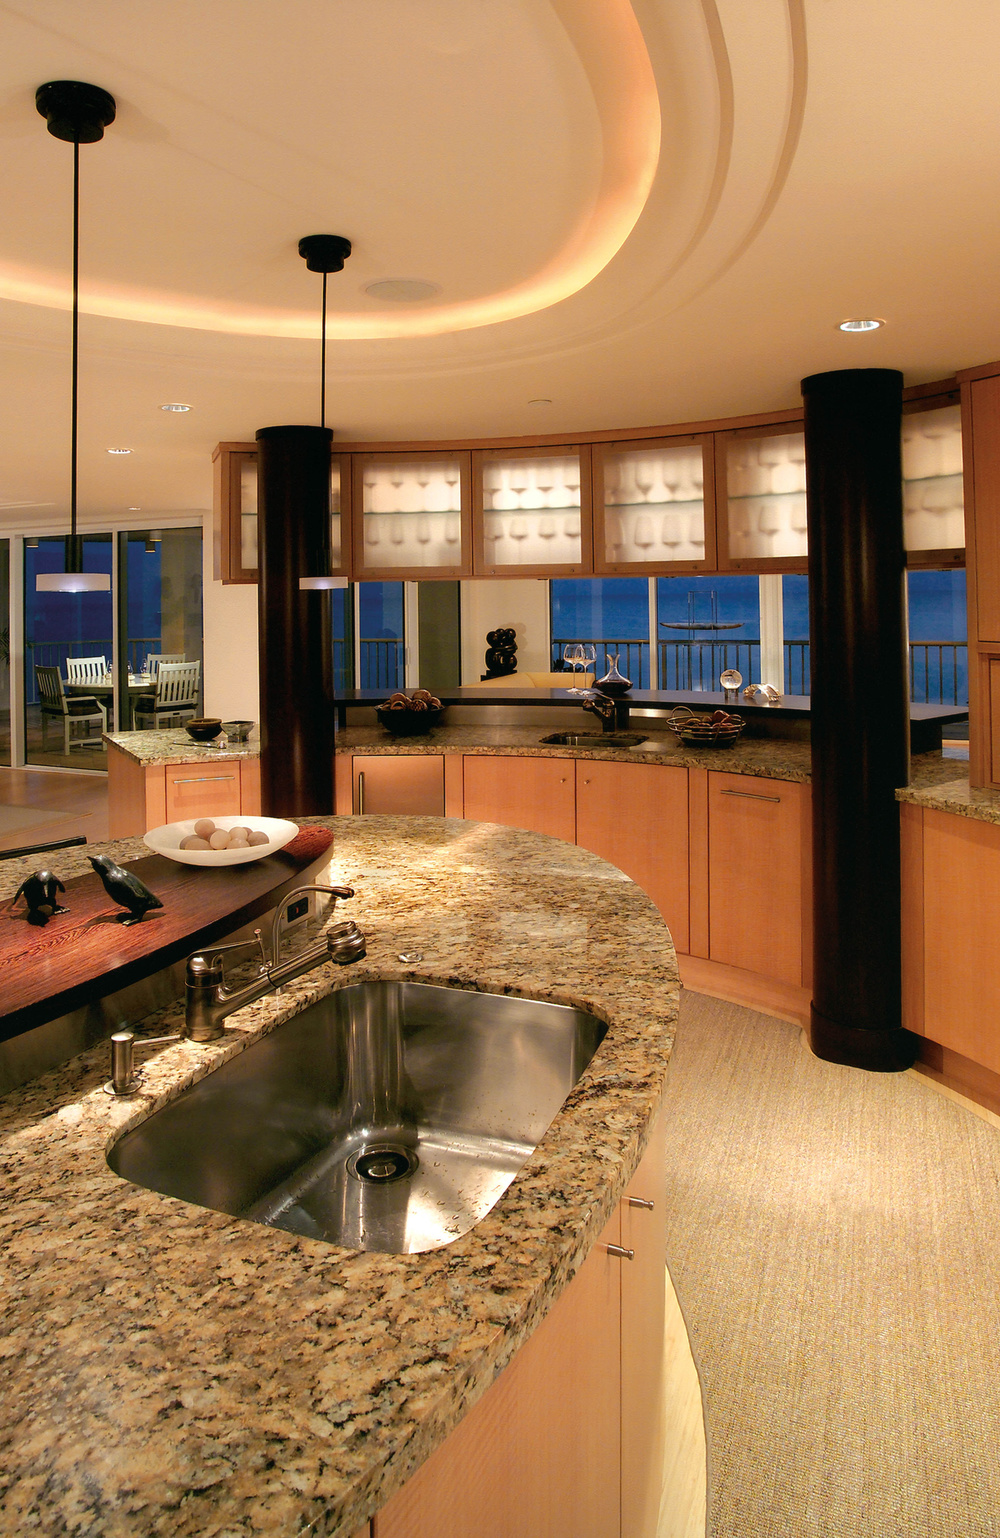 Smith_Florida_Kitchen2.jpg